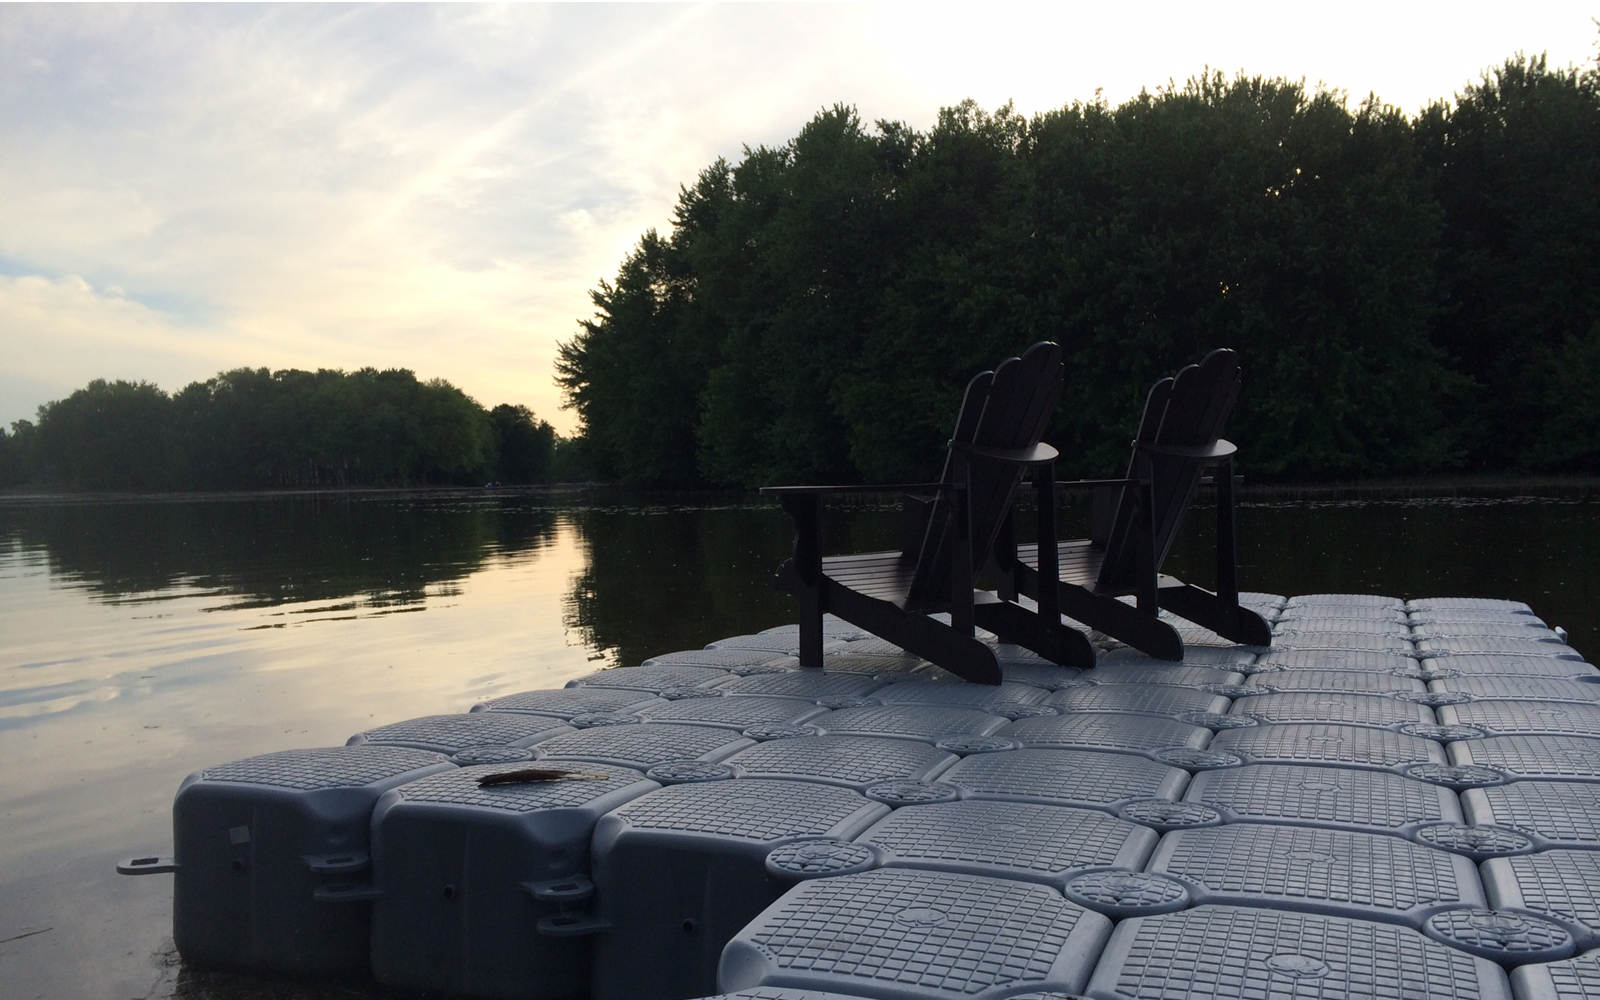 grey Jetfloat dock with Muskoka chairs